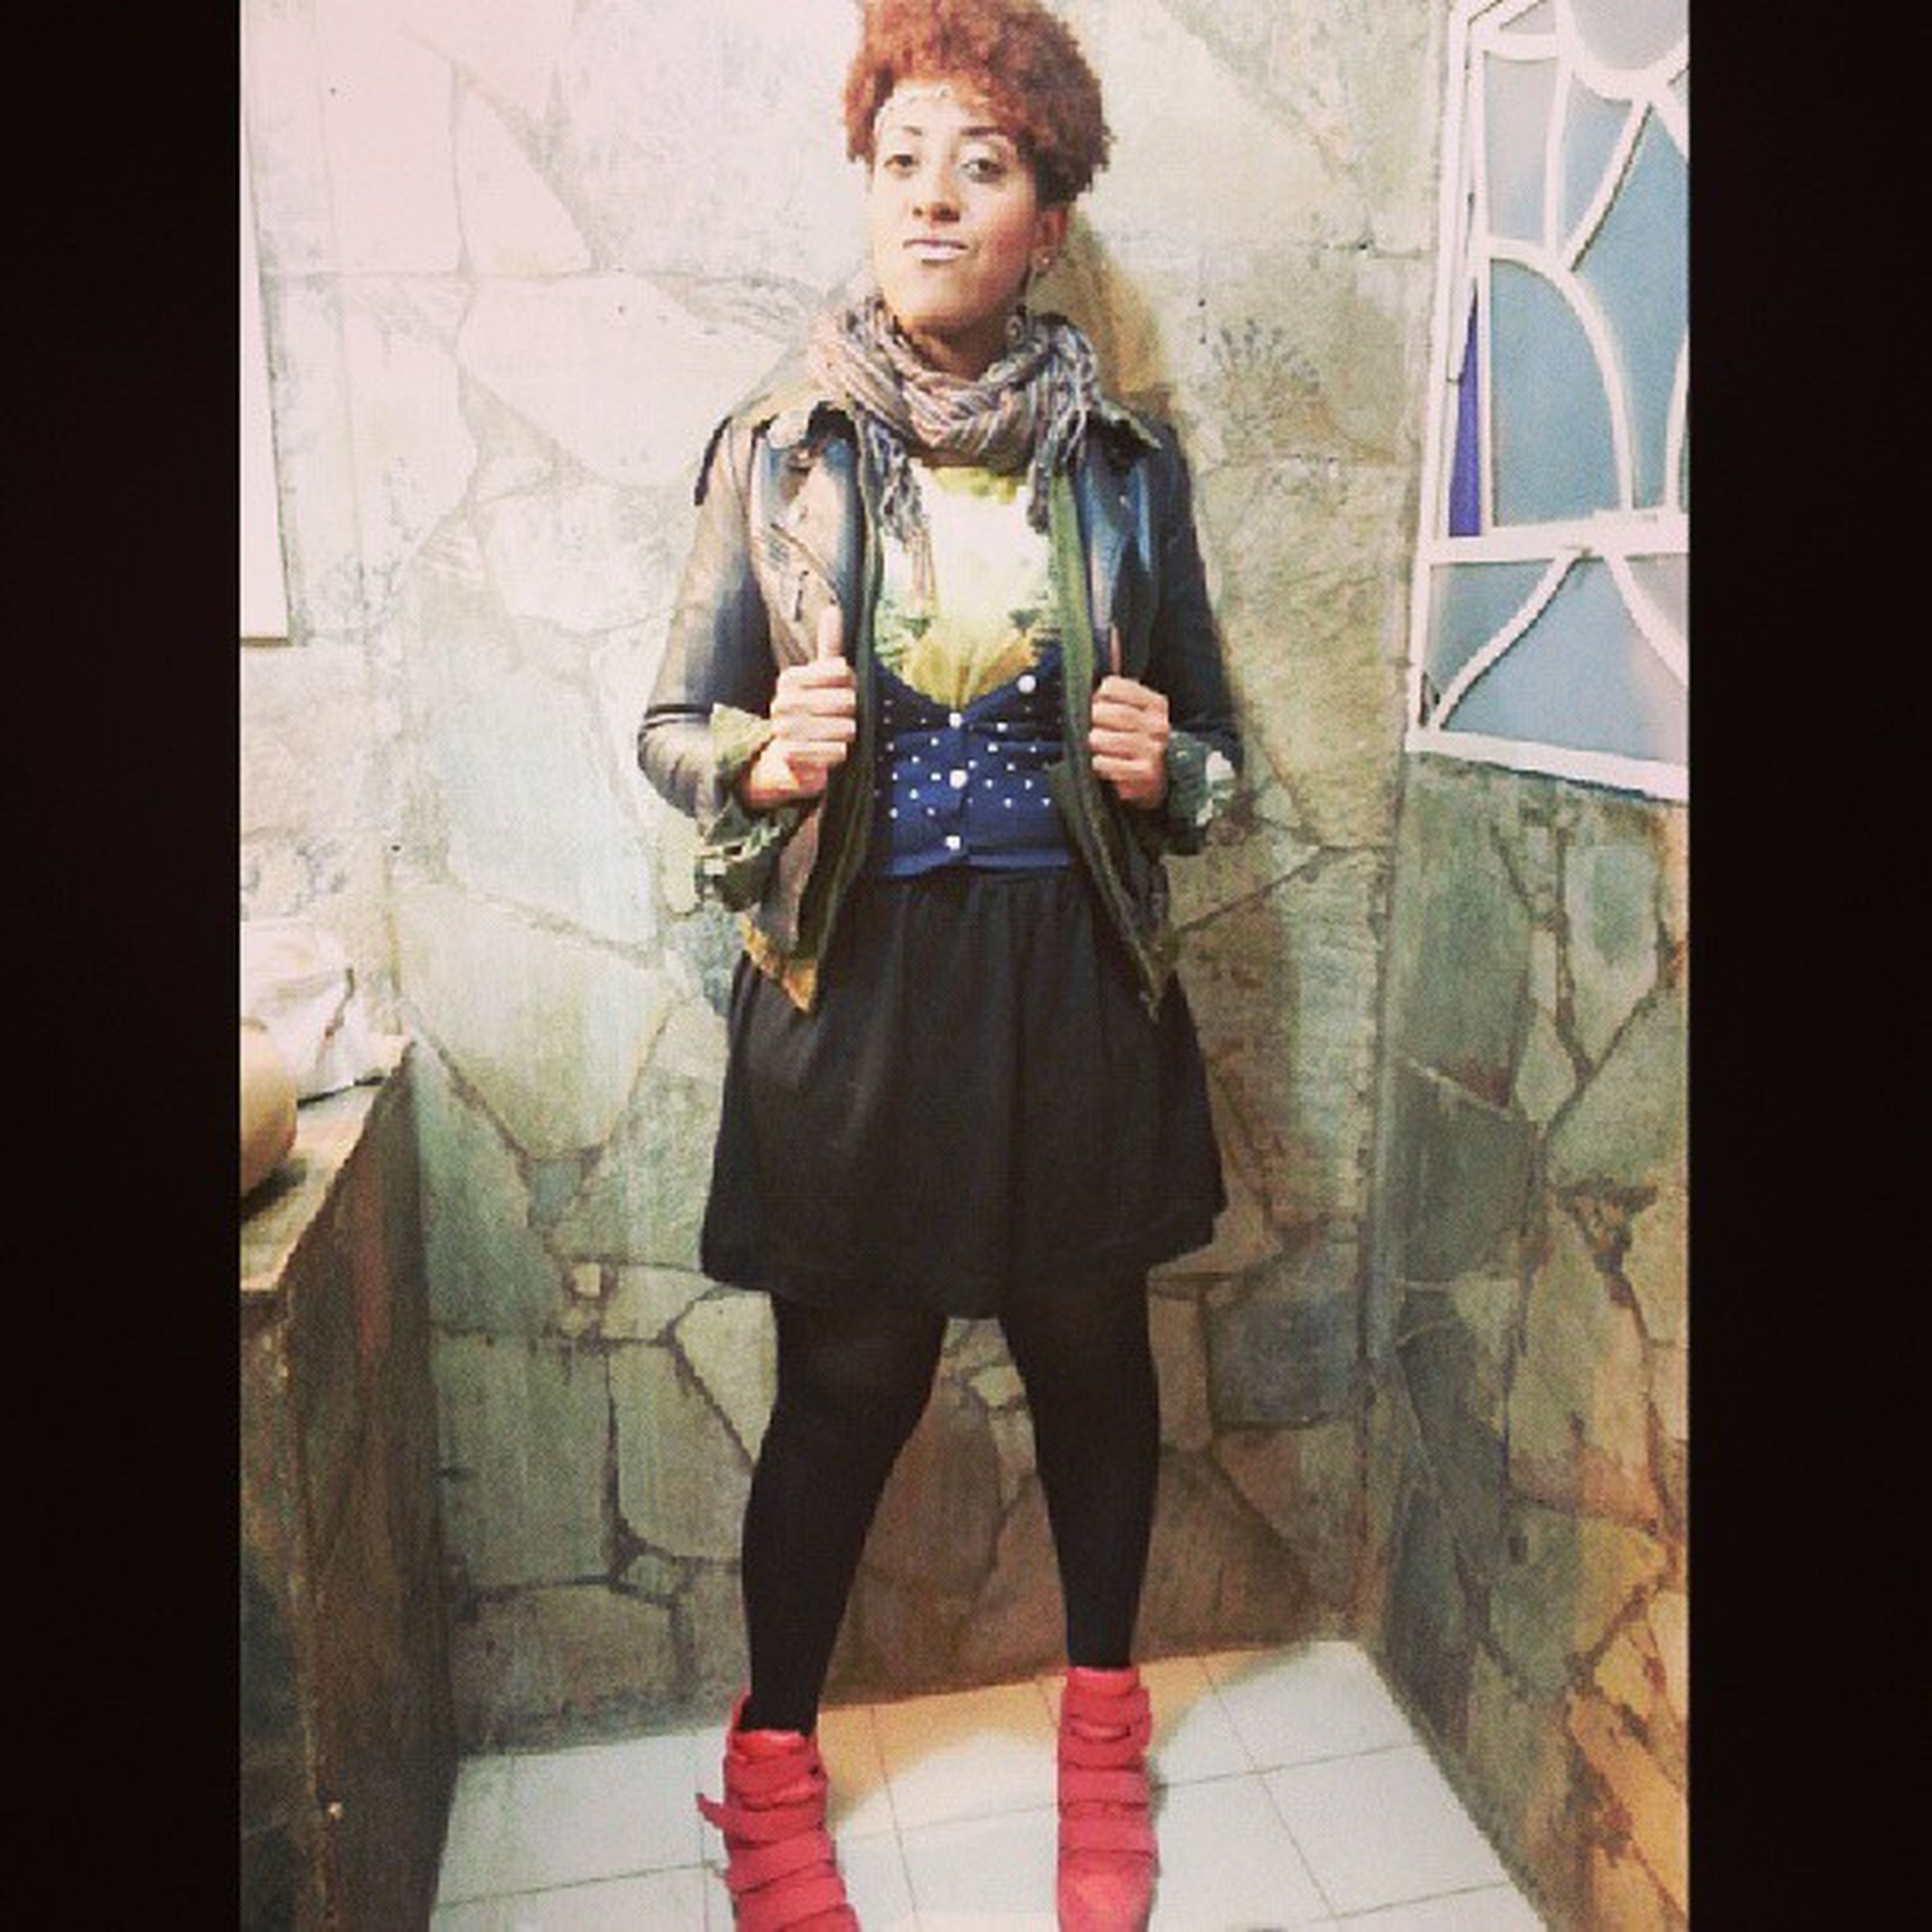 Looktonight Lookthursday Amazinggirl Urbanstyle africanstyle africanfashion